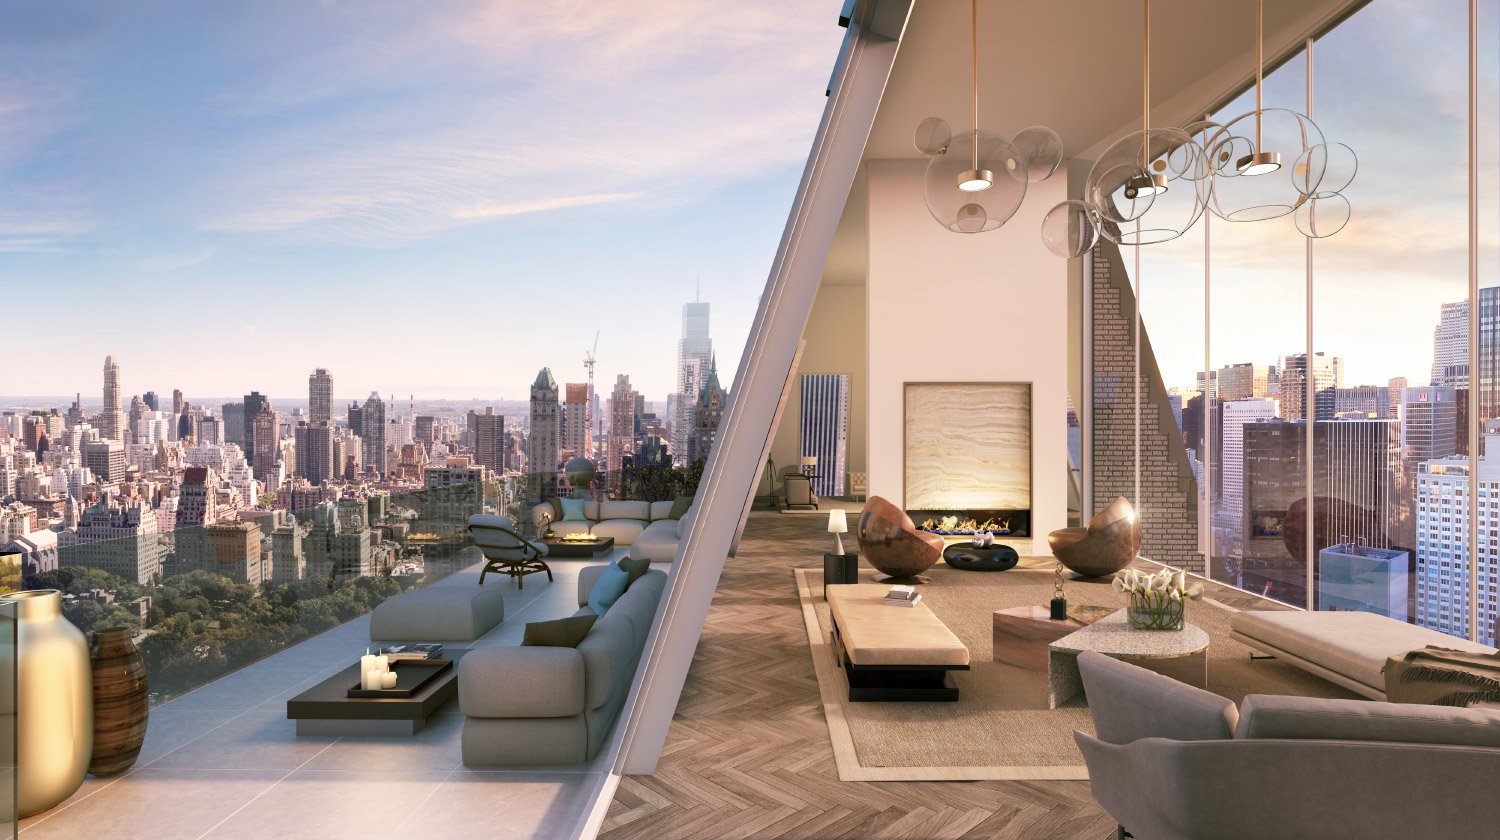 Rendering of the Hampshire House penthouse at 150 Central Park South